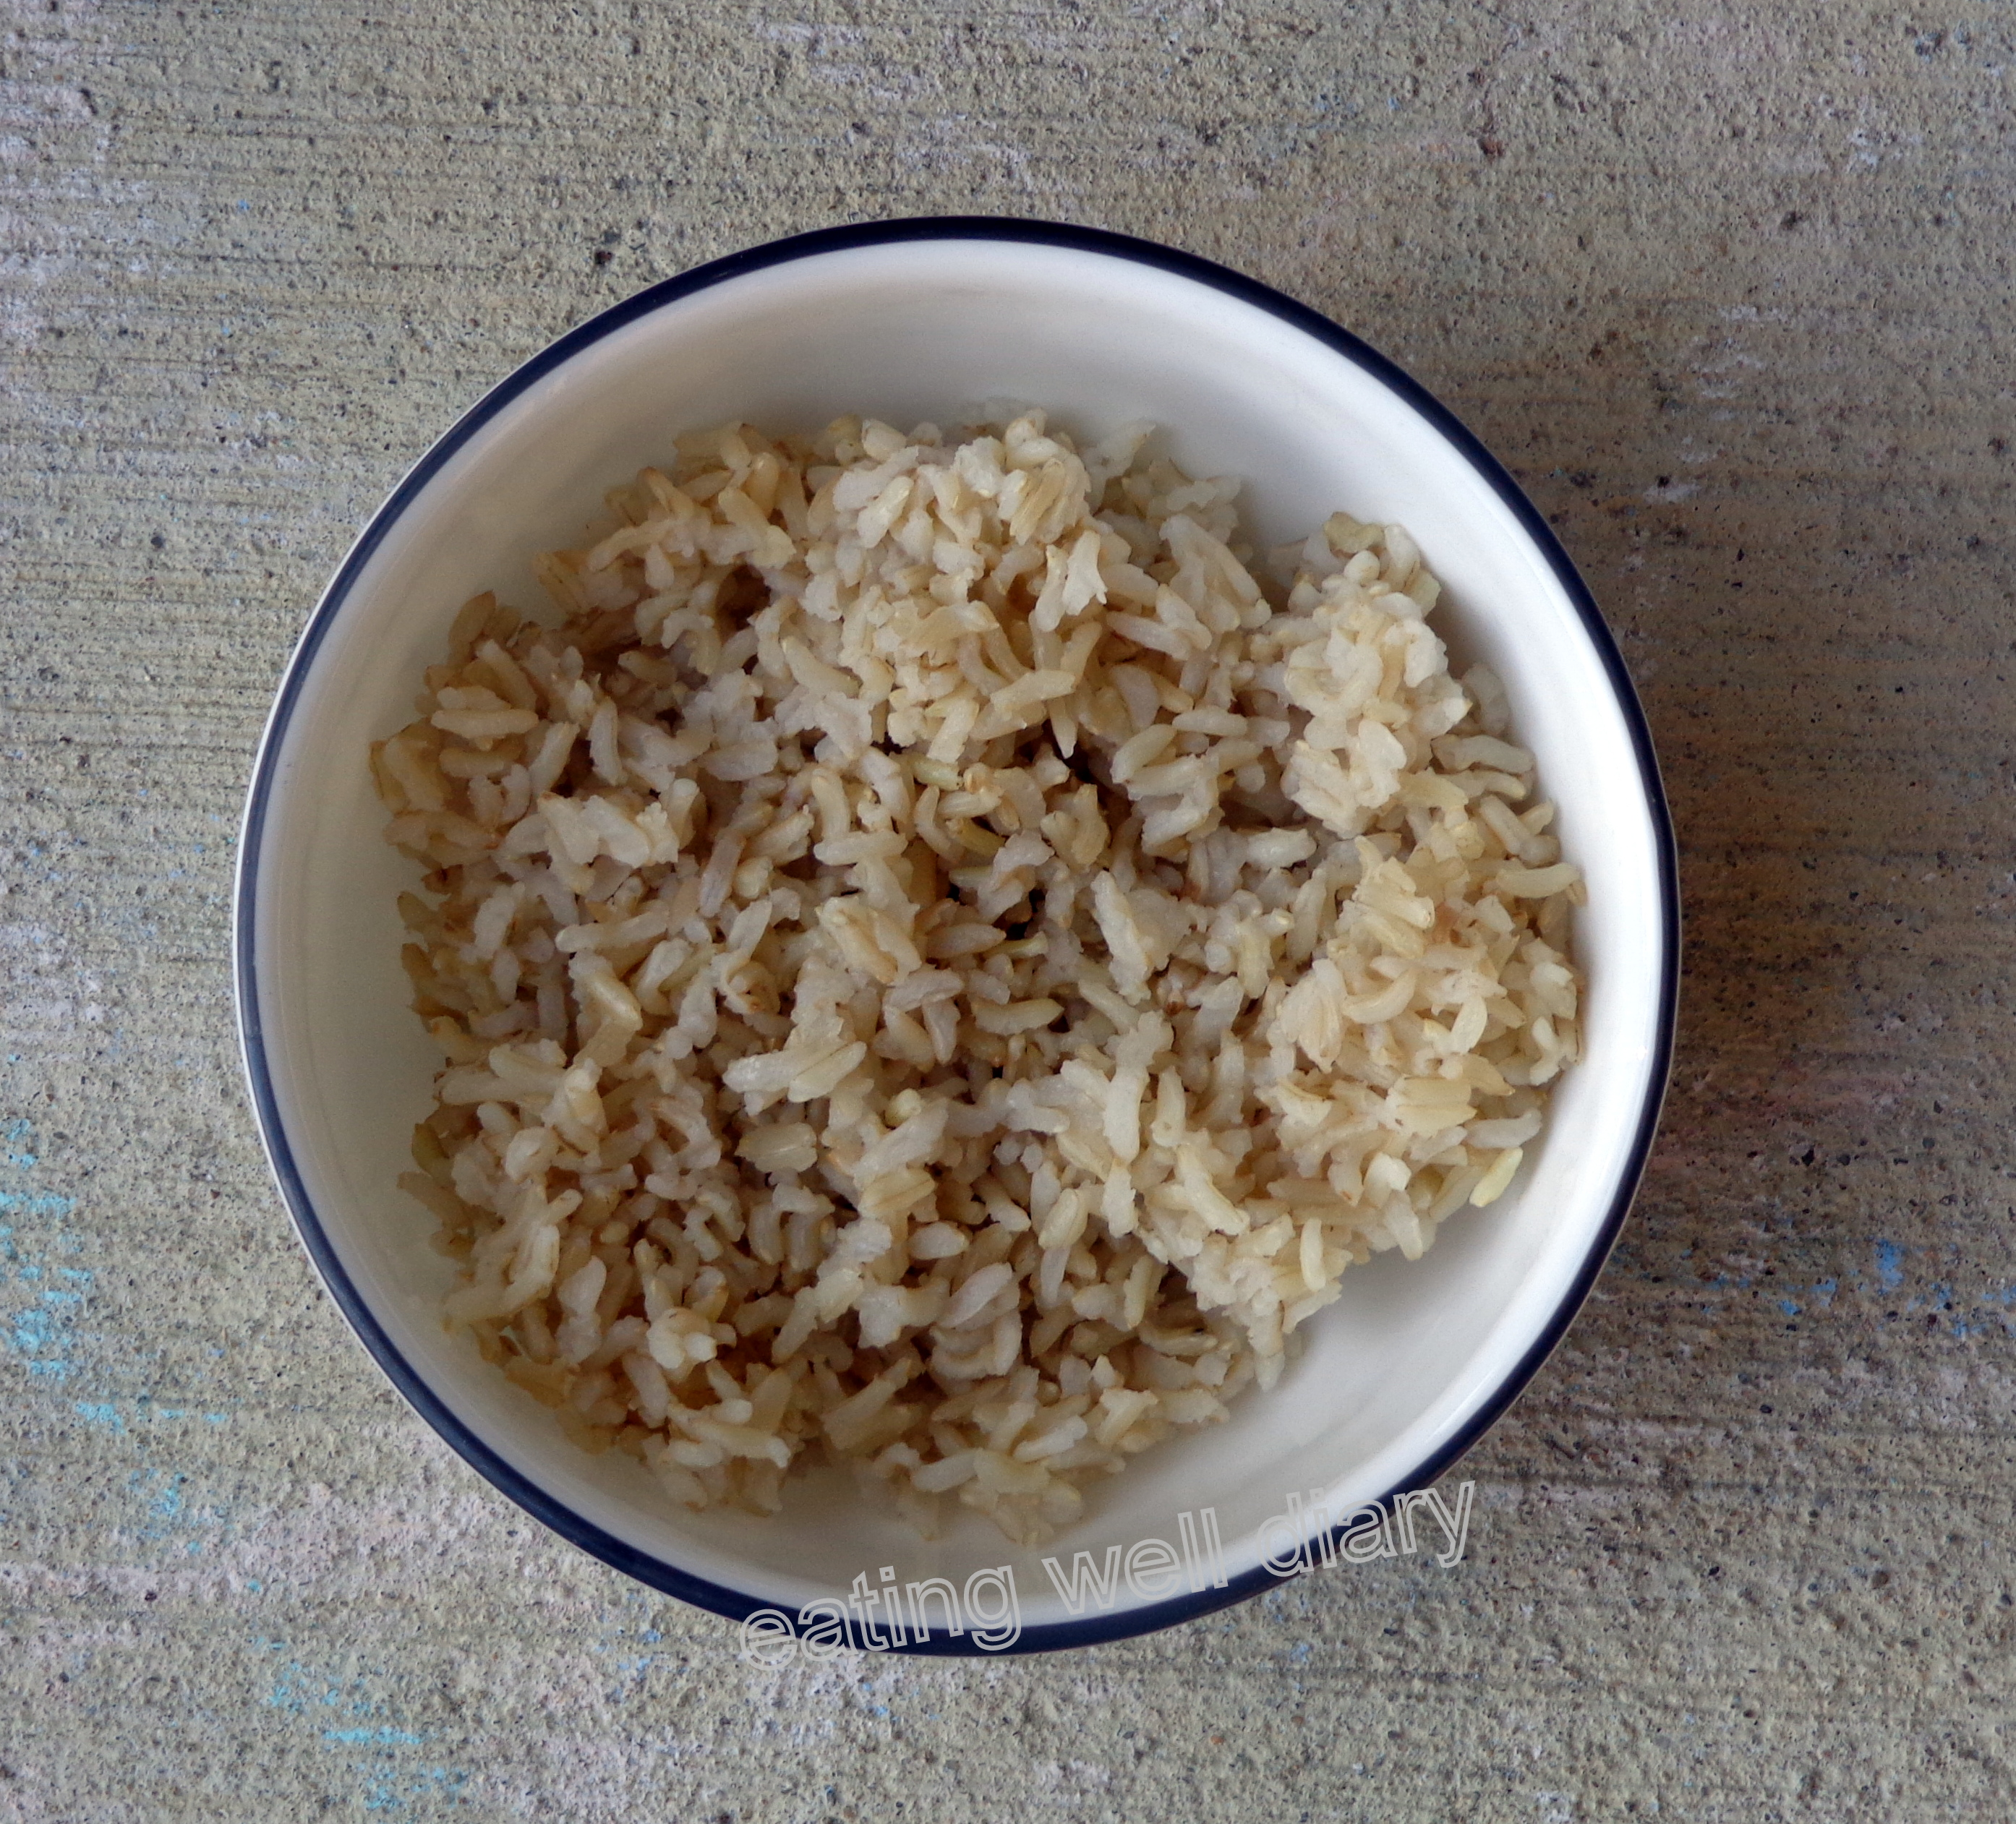 How much is one serving of cooked brown rice